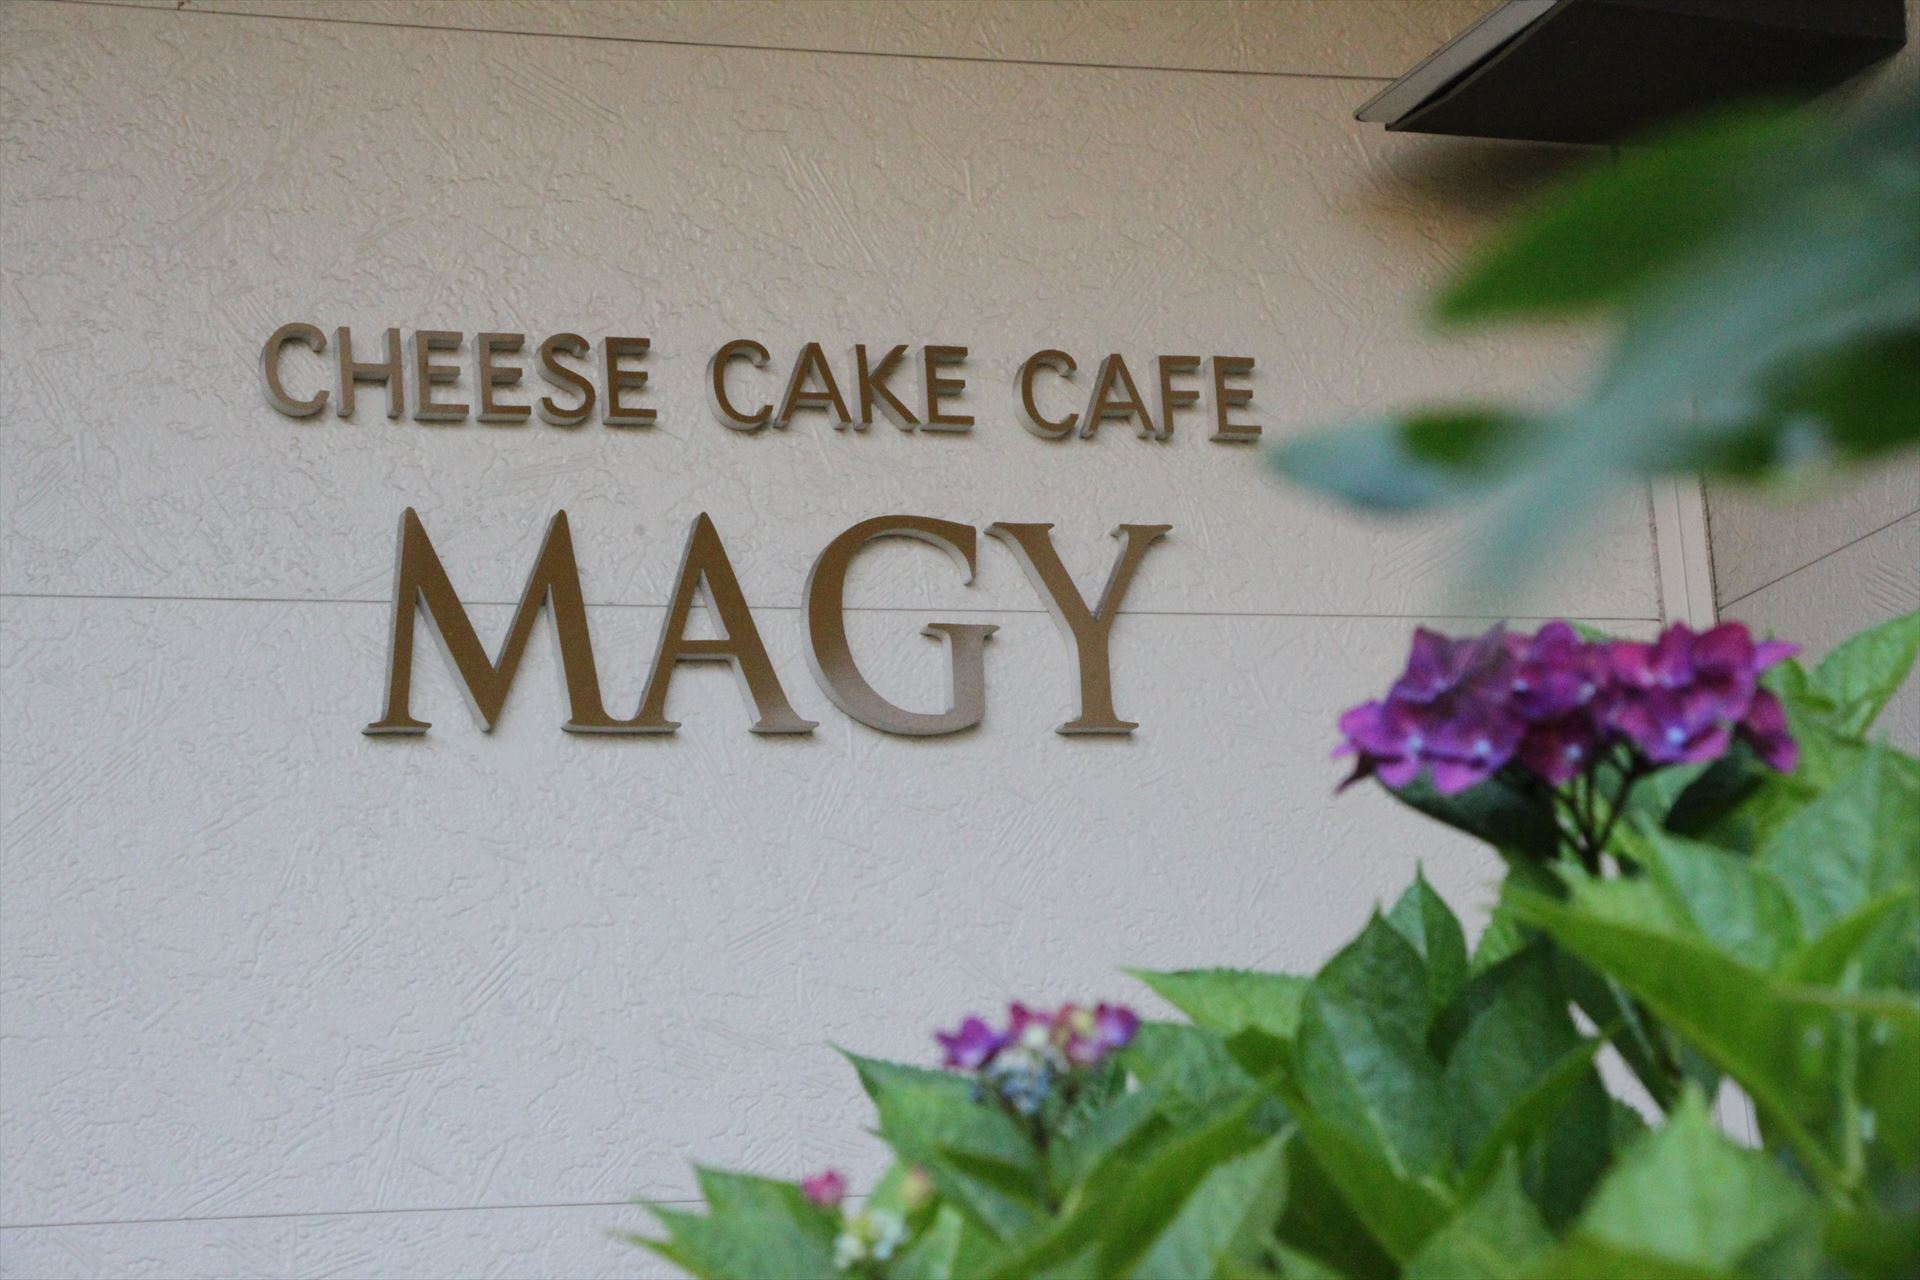 CHEESE CAKE CAFE MAGY